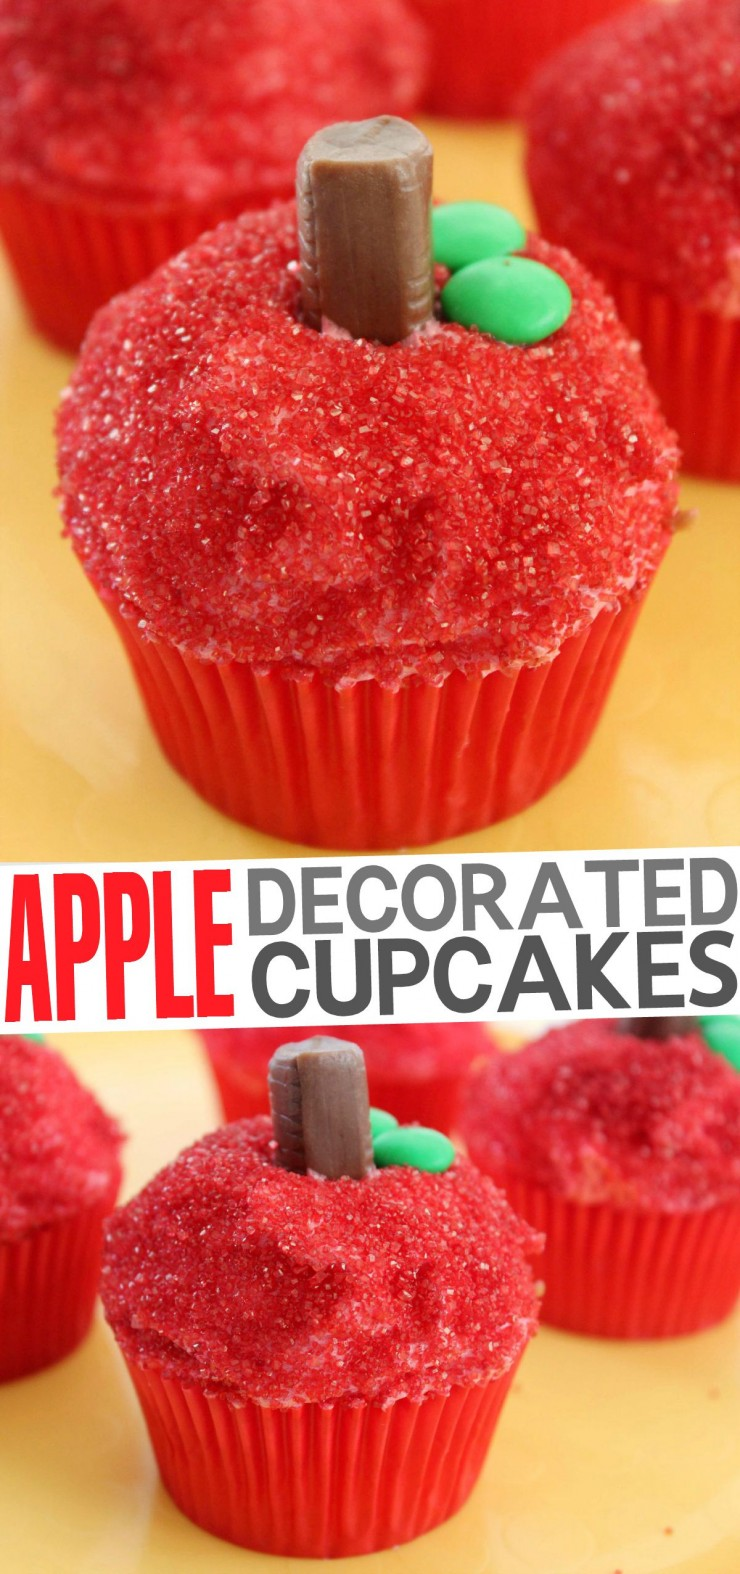 These Apple Decorated Cupcakes are an absolutely adorable back to school teacher appreciation gift or for a fun autumn party!